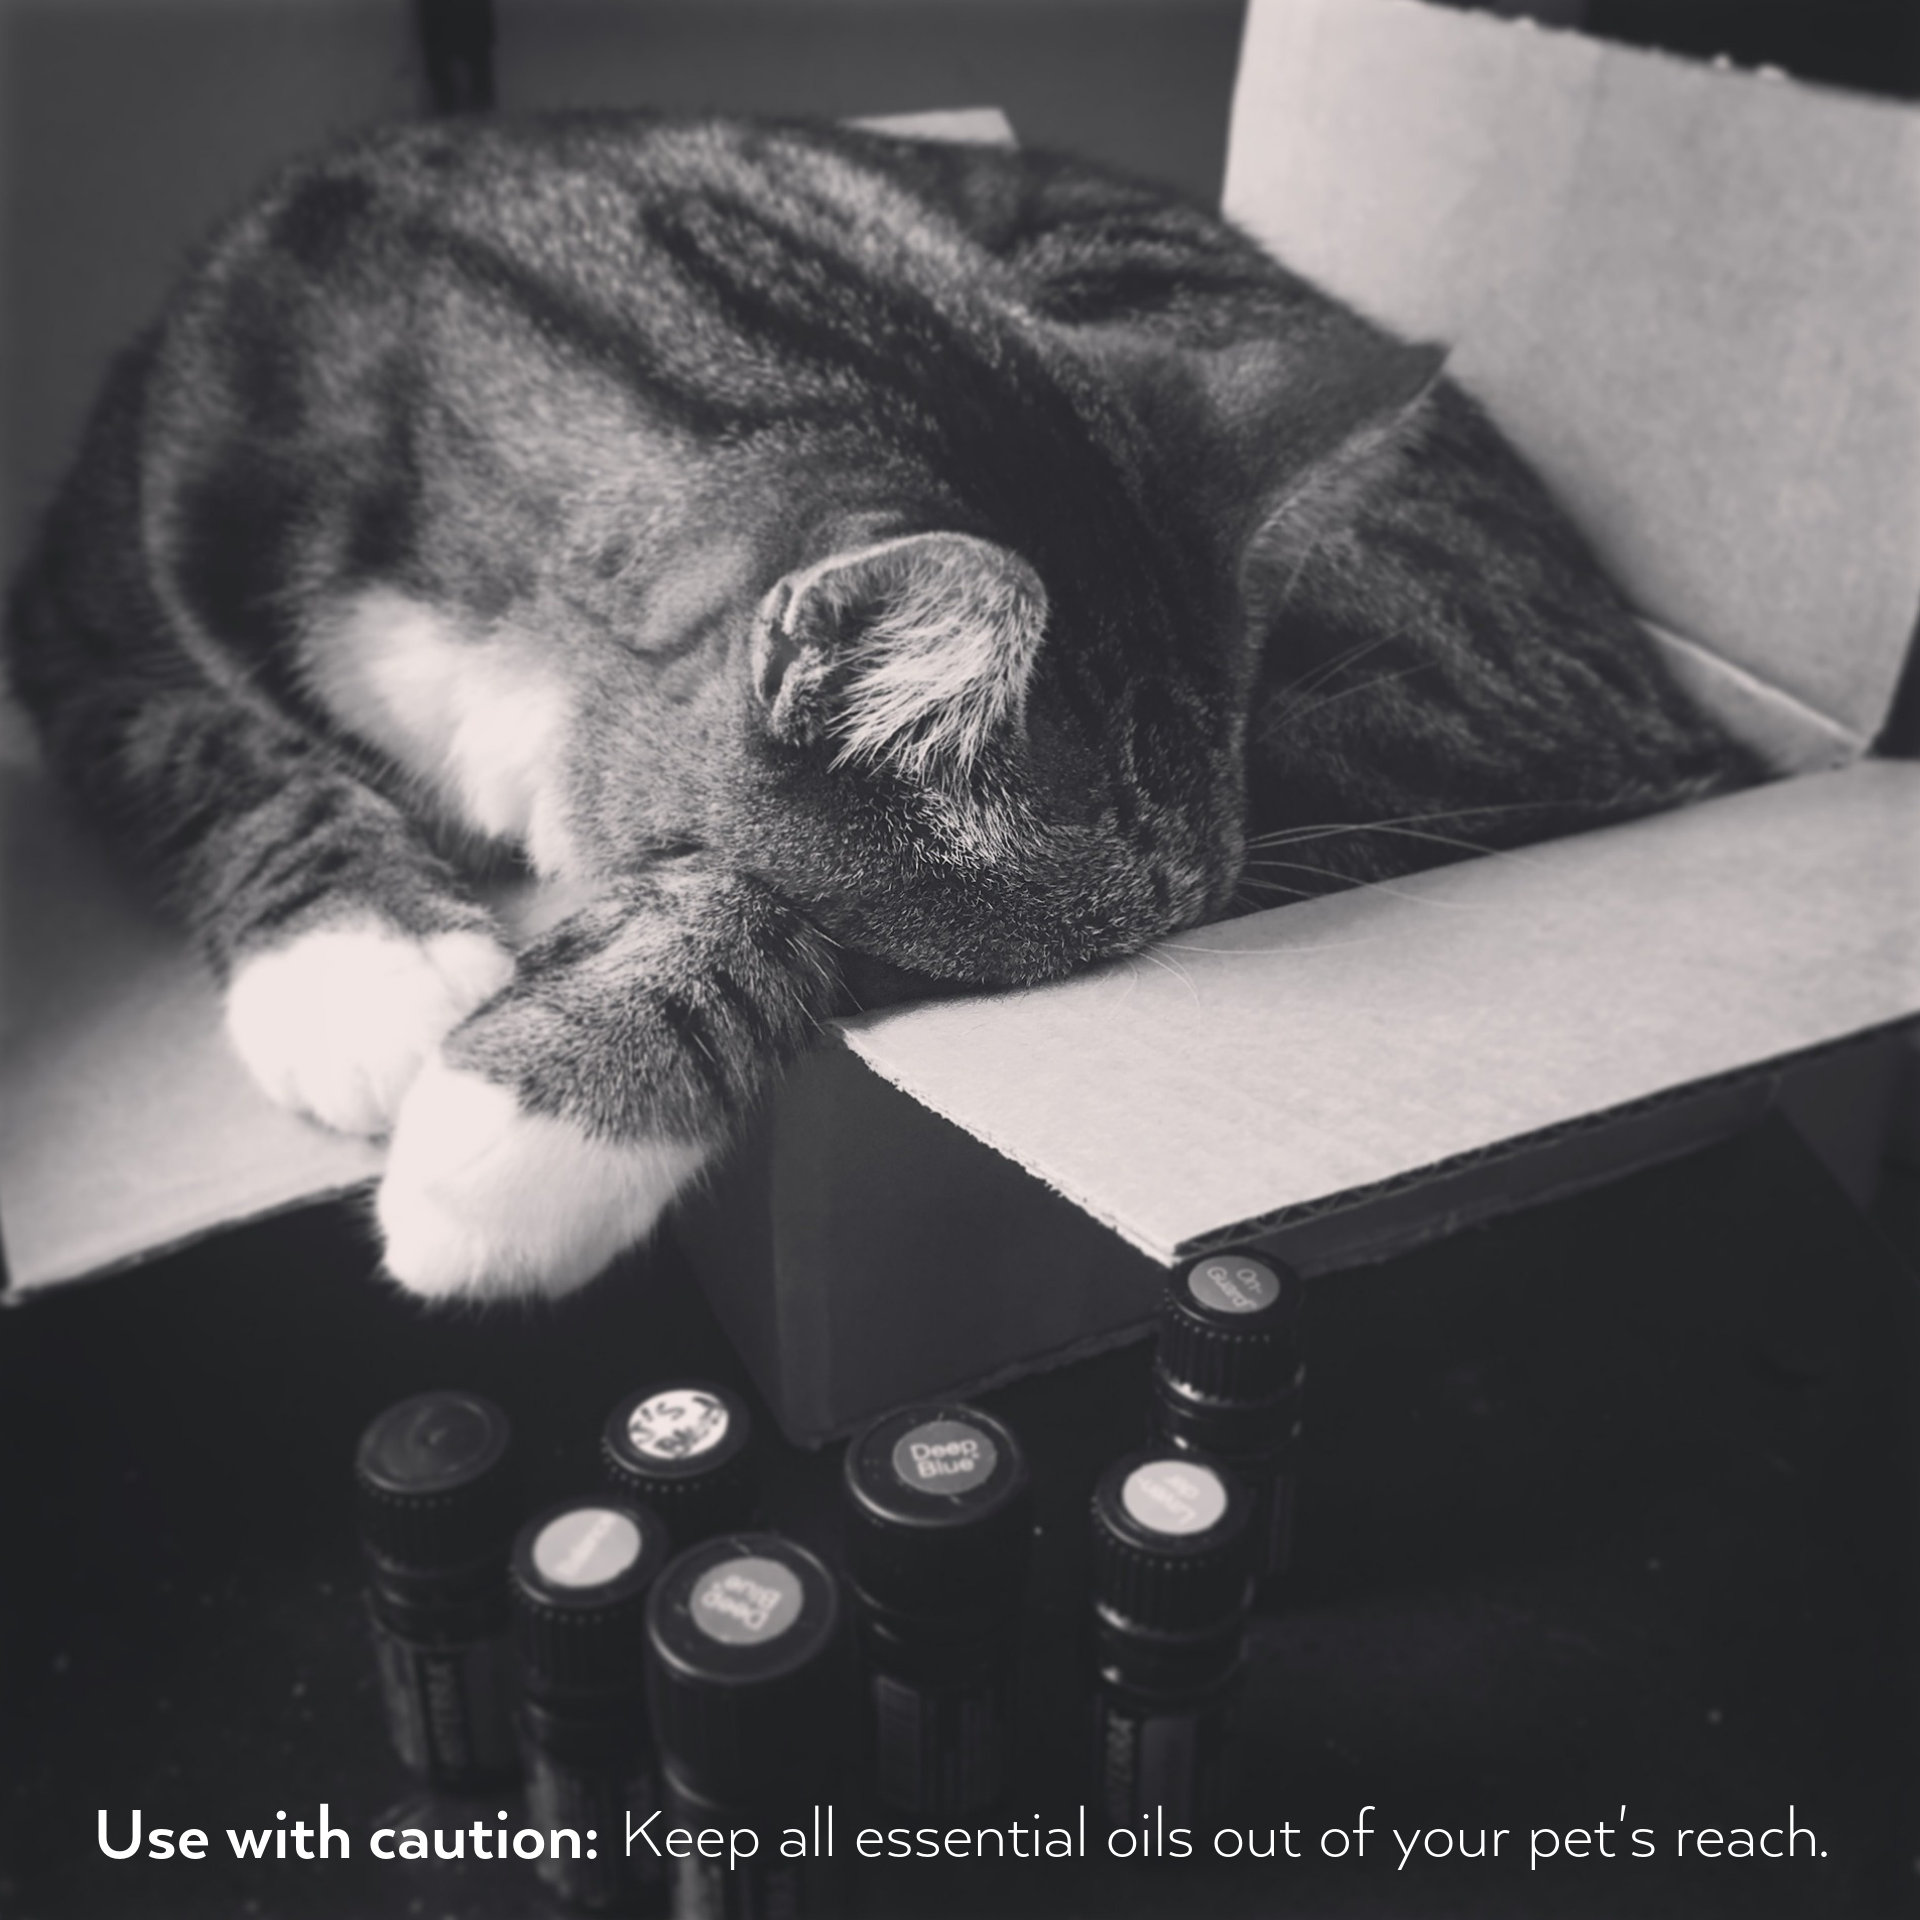 Keep all essential oils out of your pet's reach.